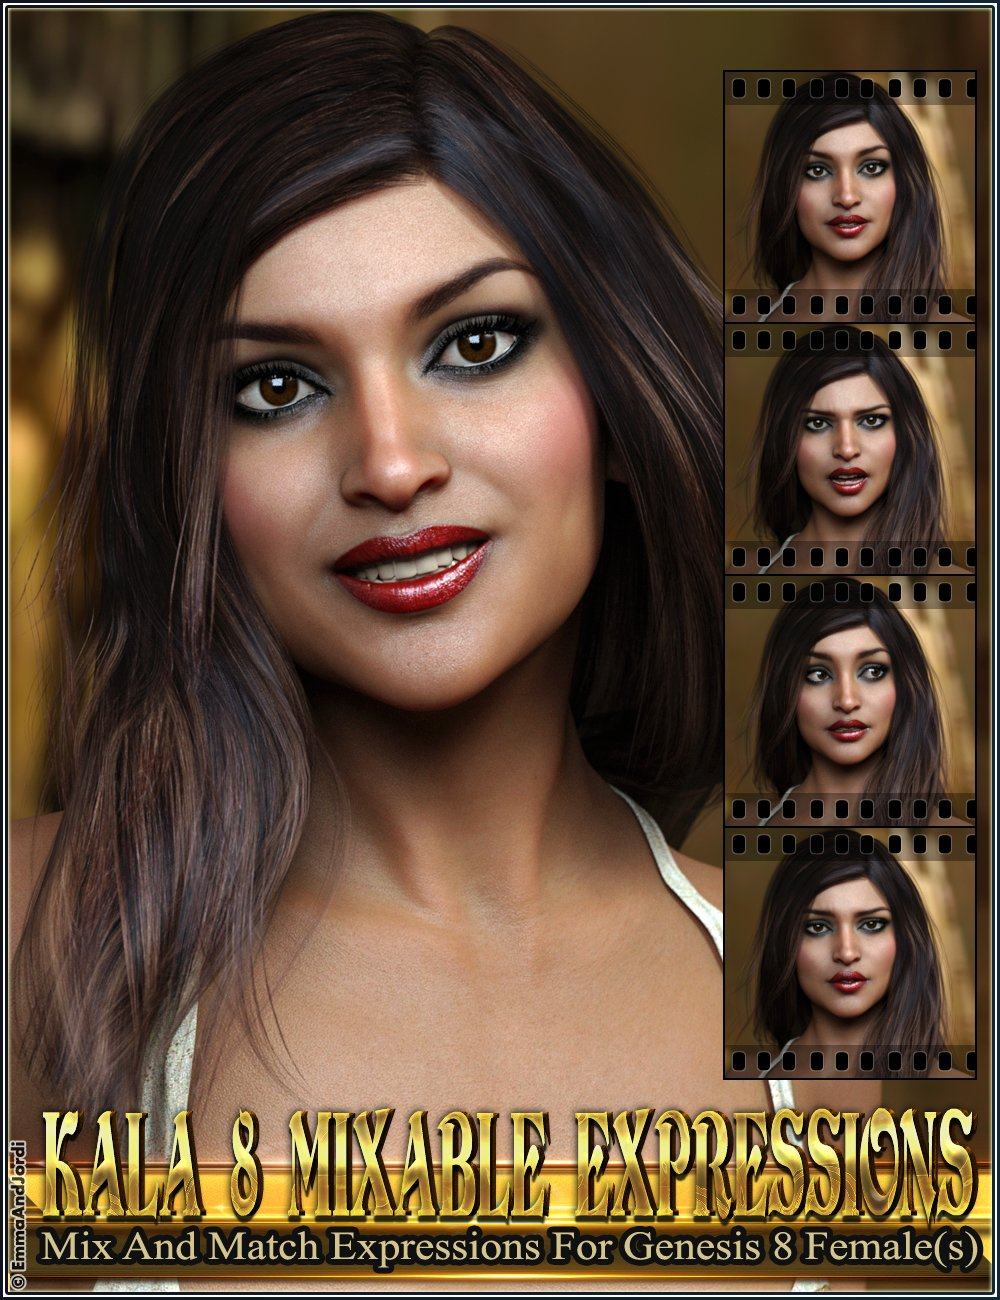 Mixable Expressions for Kala 8 and Genesis 8 Female(s) by: , 3D Models by Daz 3D